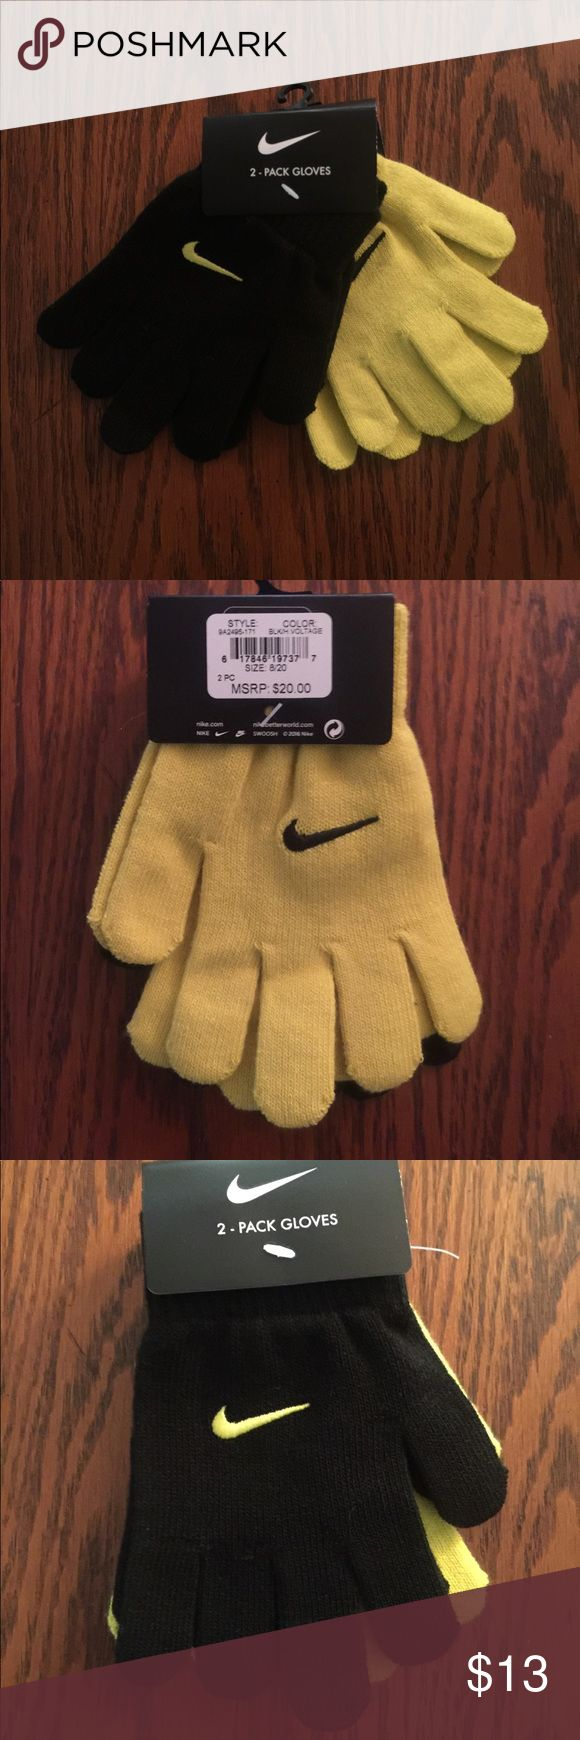 NIKE ONE SIZE GLOVES Nike Gloves that fit size child 8-20 boys or girls very stretchy!  Smoke free pet free home.  Ships in 24hrs with tracking number!  Delivered to your front door!  Price firm unless bundled Nike Accessories Mittens